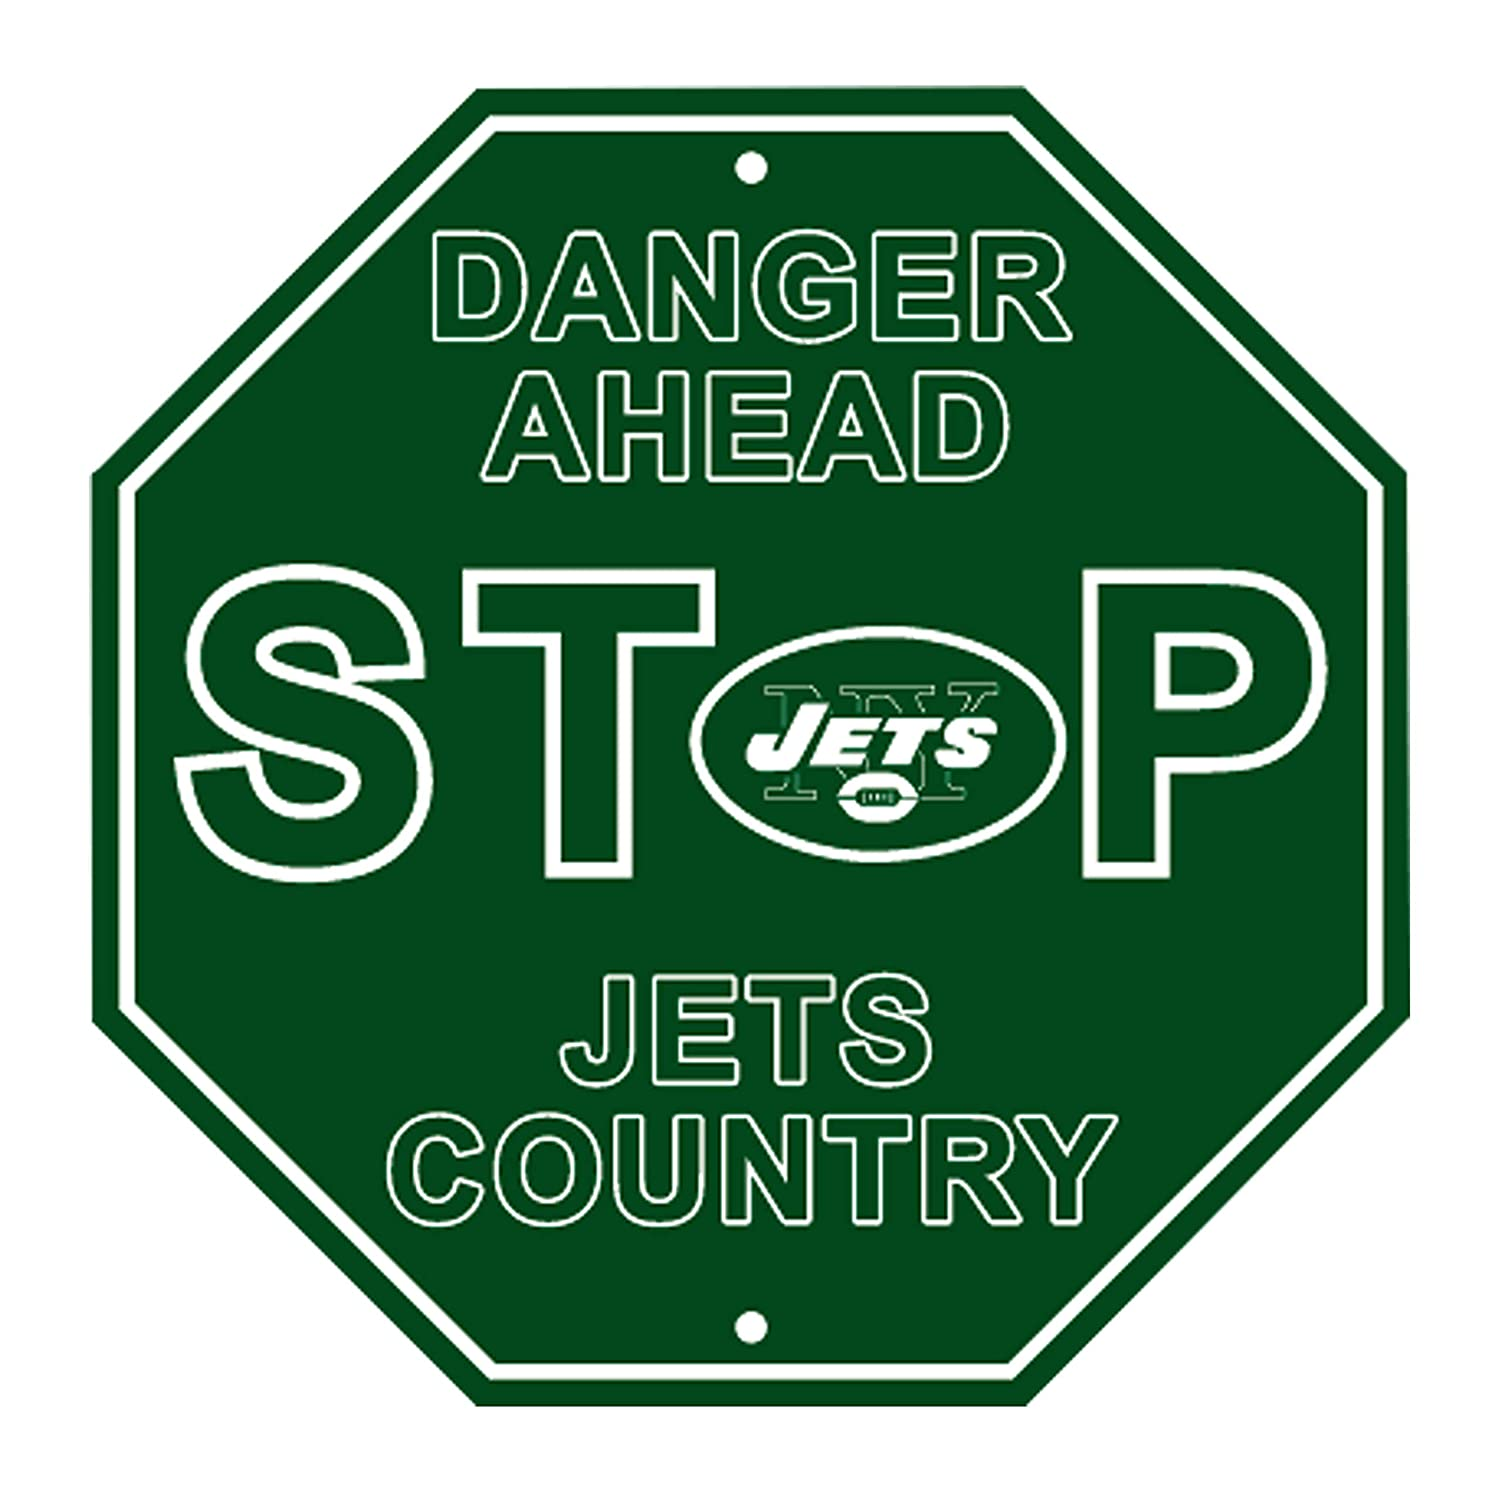 RongJ- store NFL Stop Sign Parking Sign 12 x 12 Danger Ahead for Fans